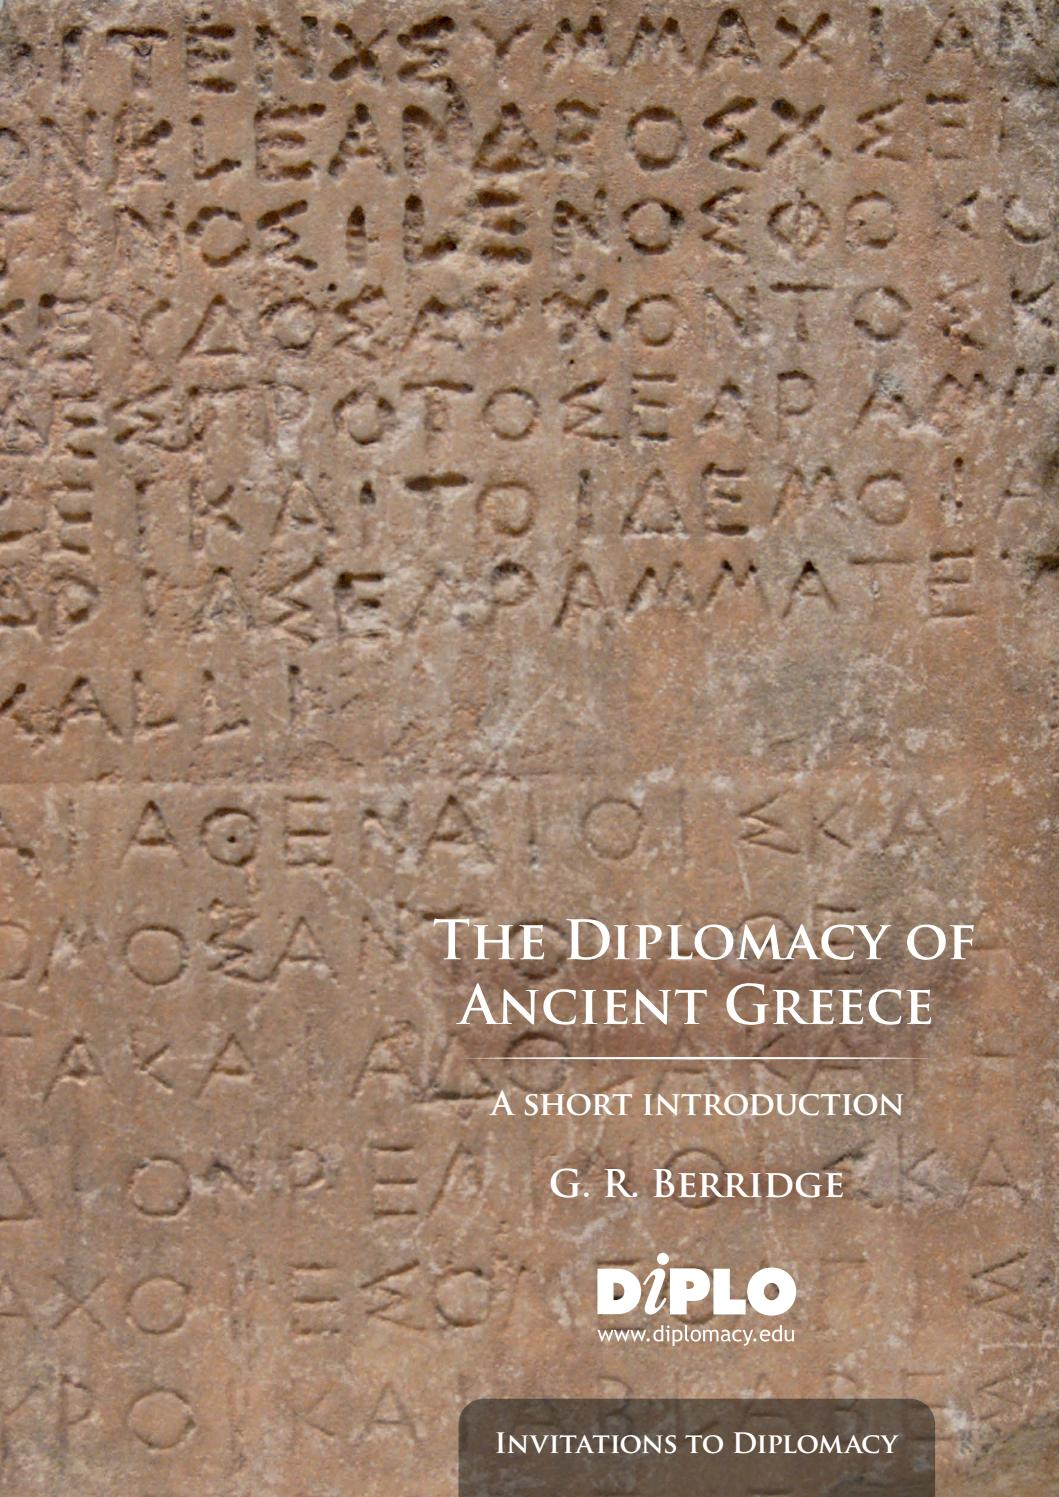 The Diplomacy of Ancient Greece by DiploFoundation - issuu